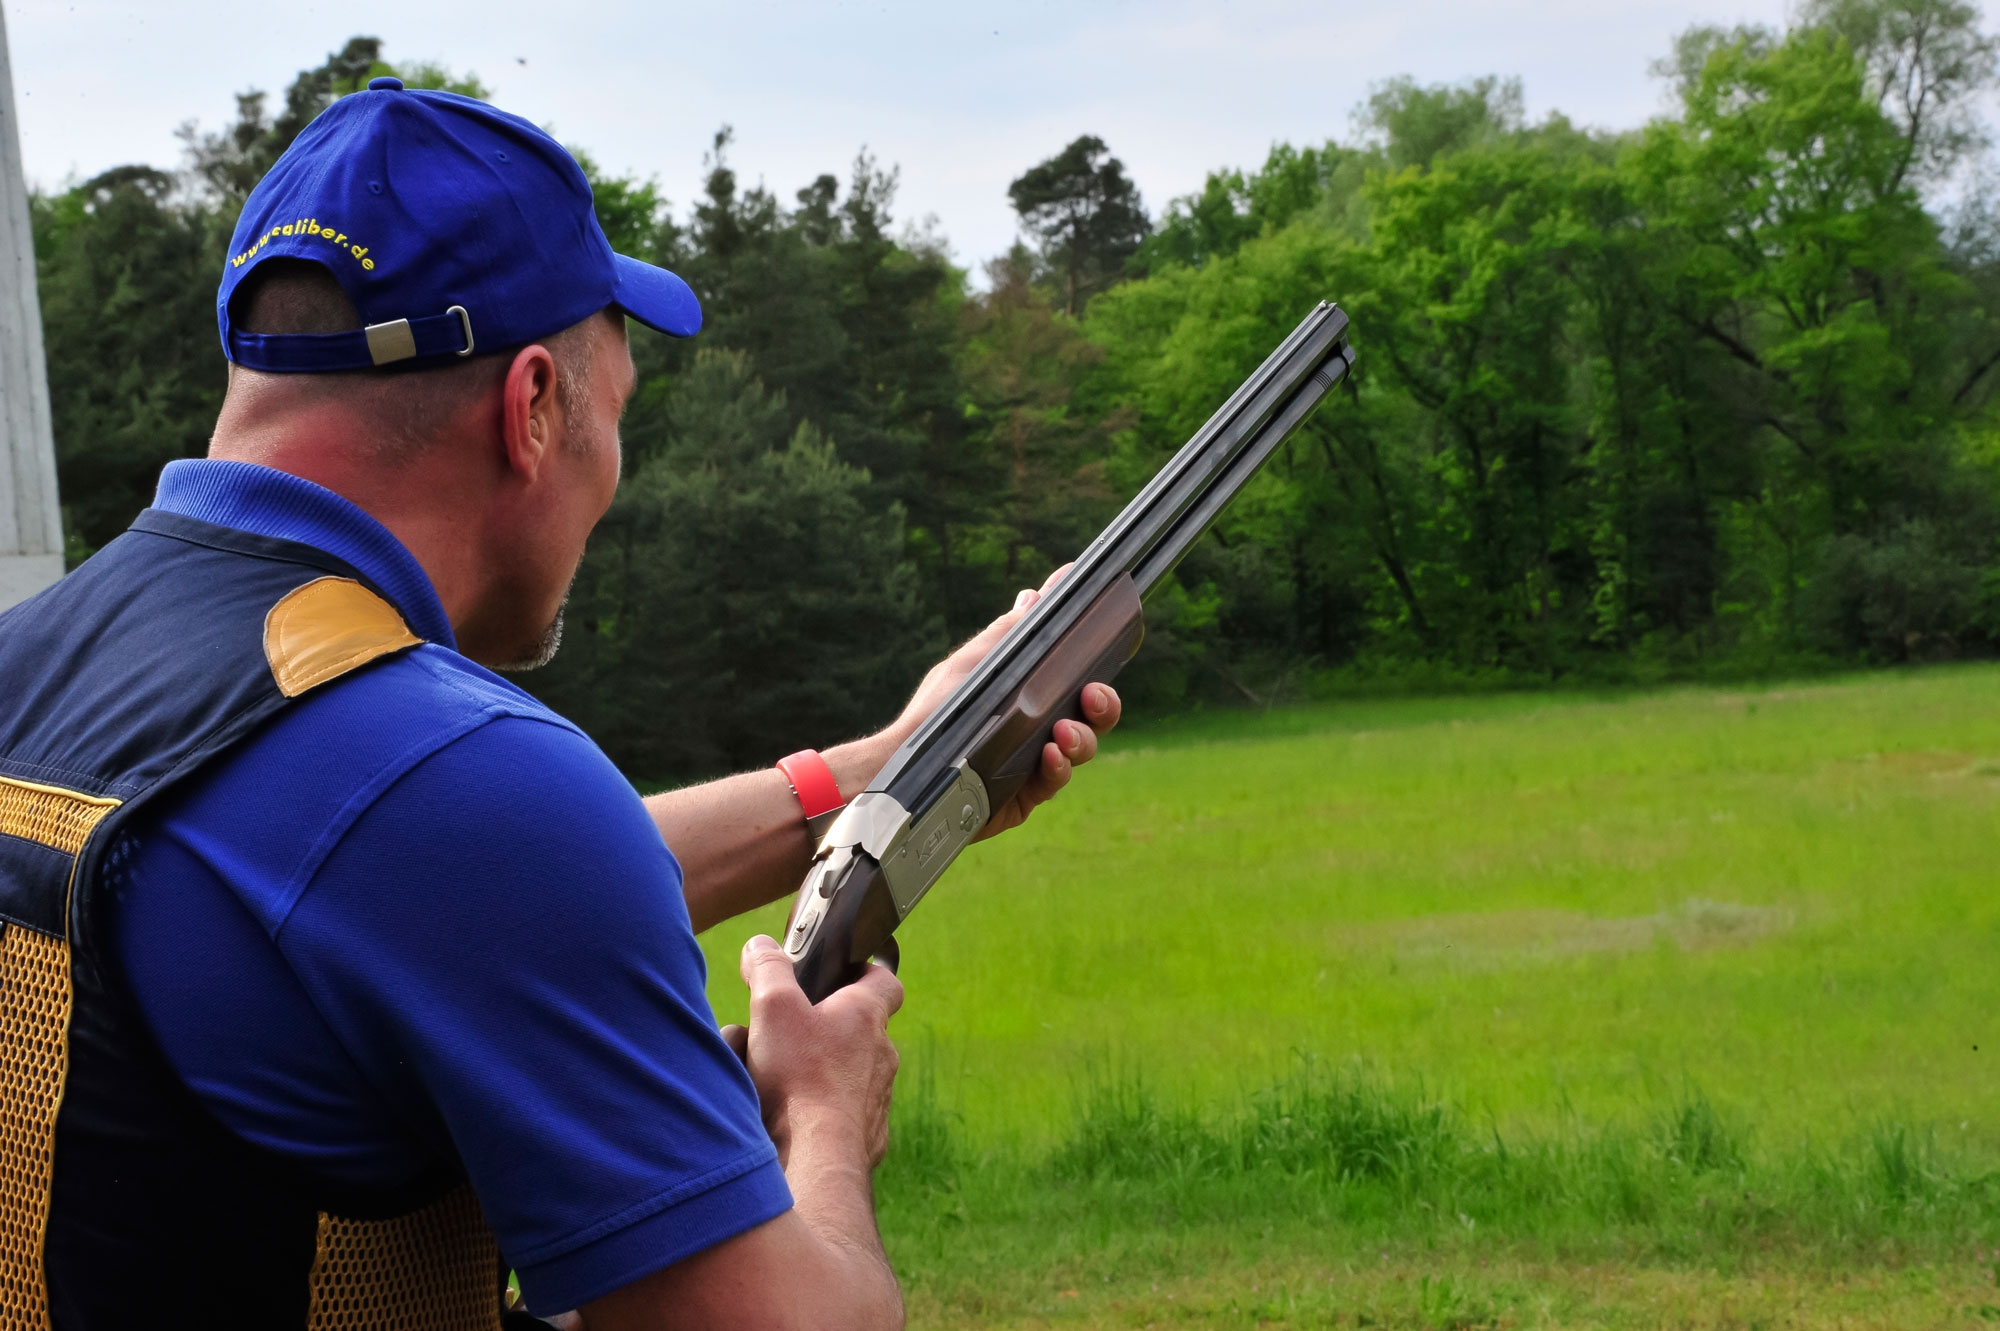 Clay pigeon shooting down at the range with the Krieghoff K-80 over and under.